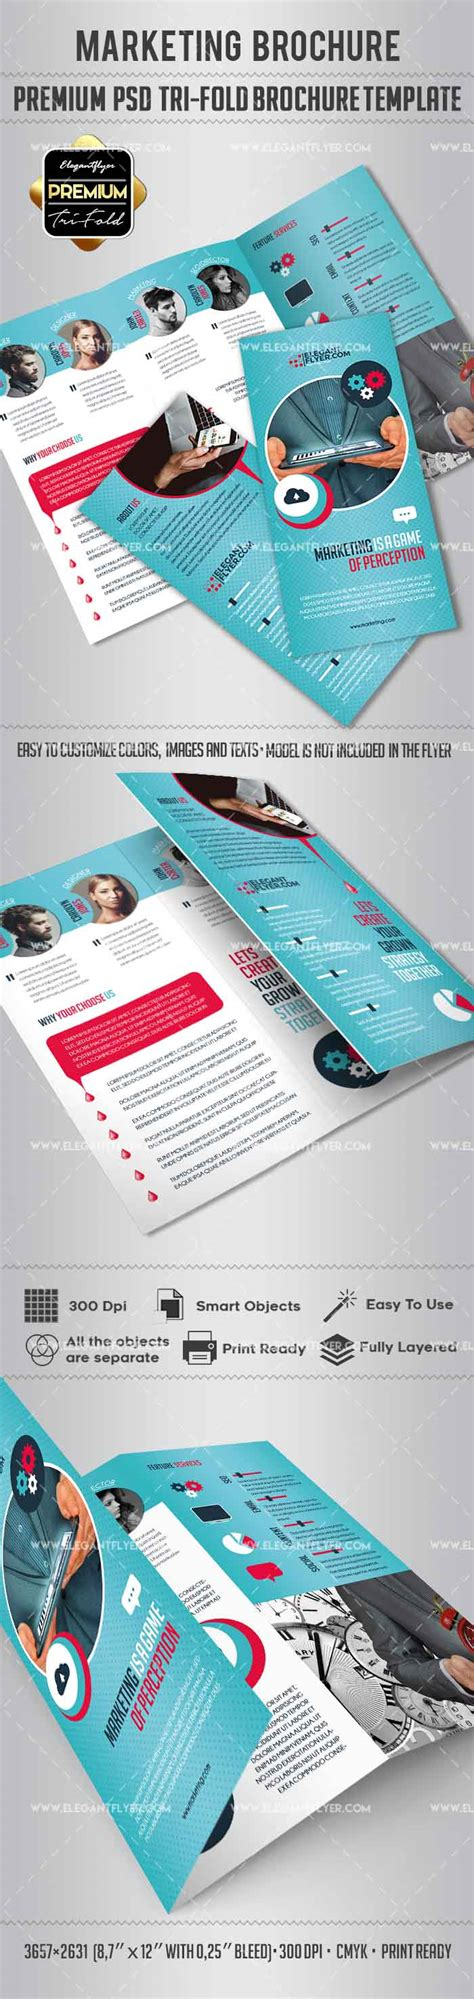 Tri Fold Brochure For Marketing By Elegantflyer Marketing Brochure Template